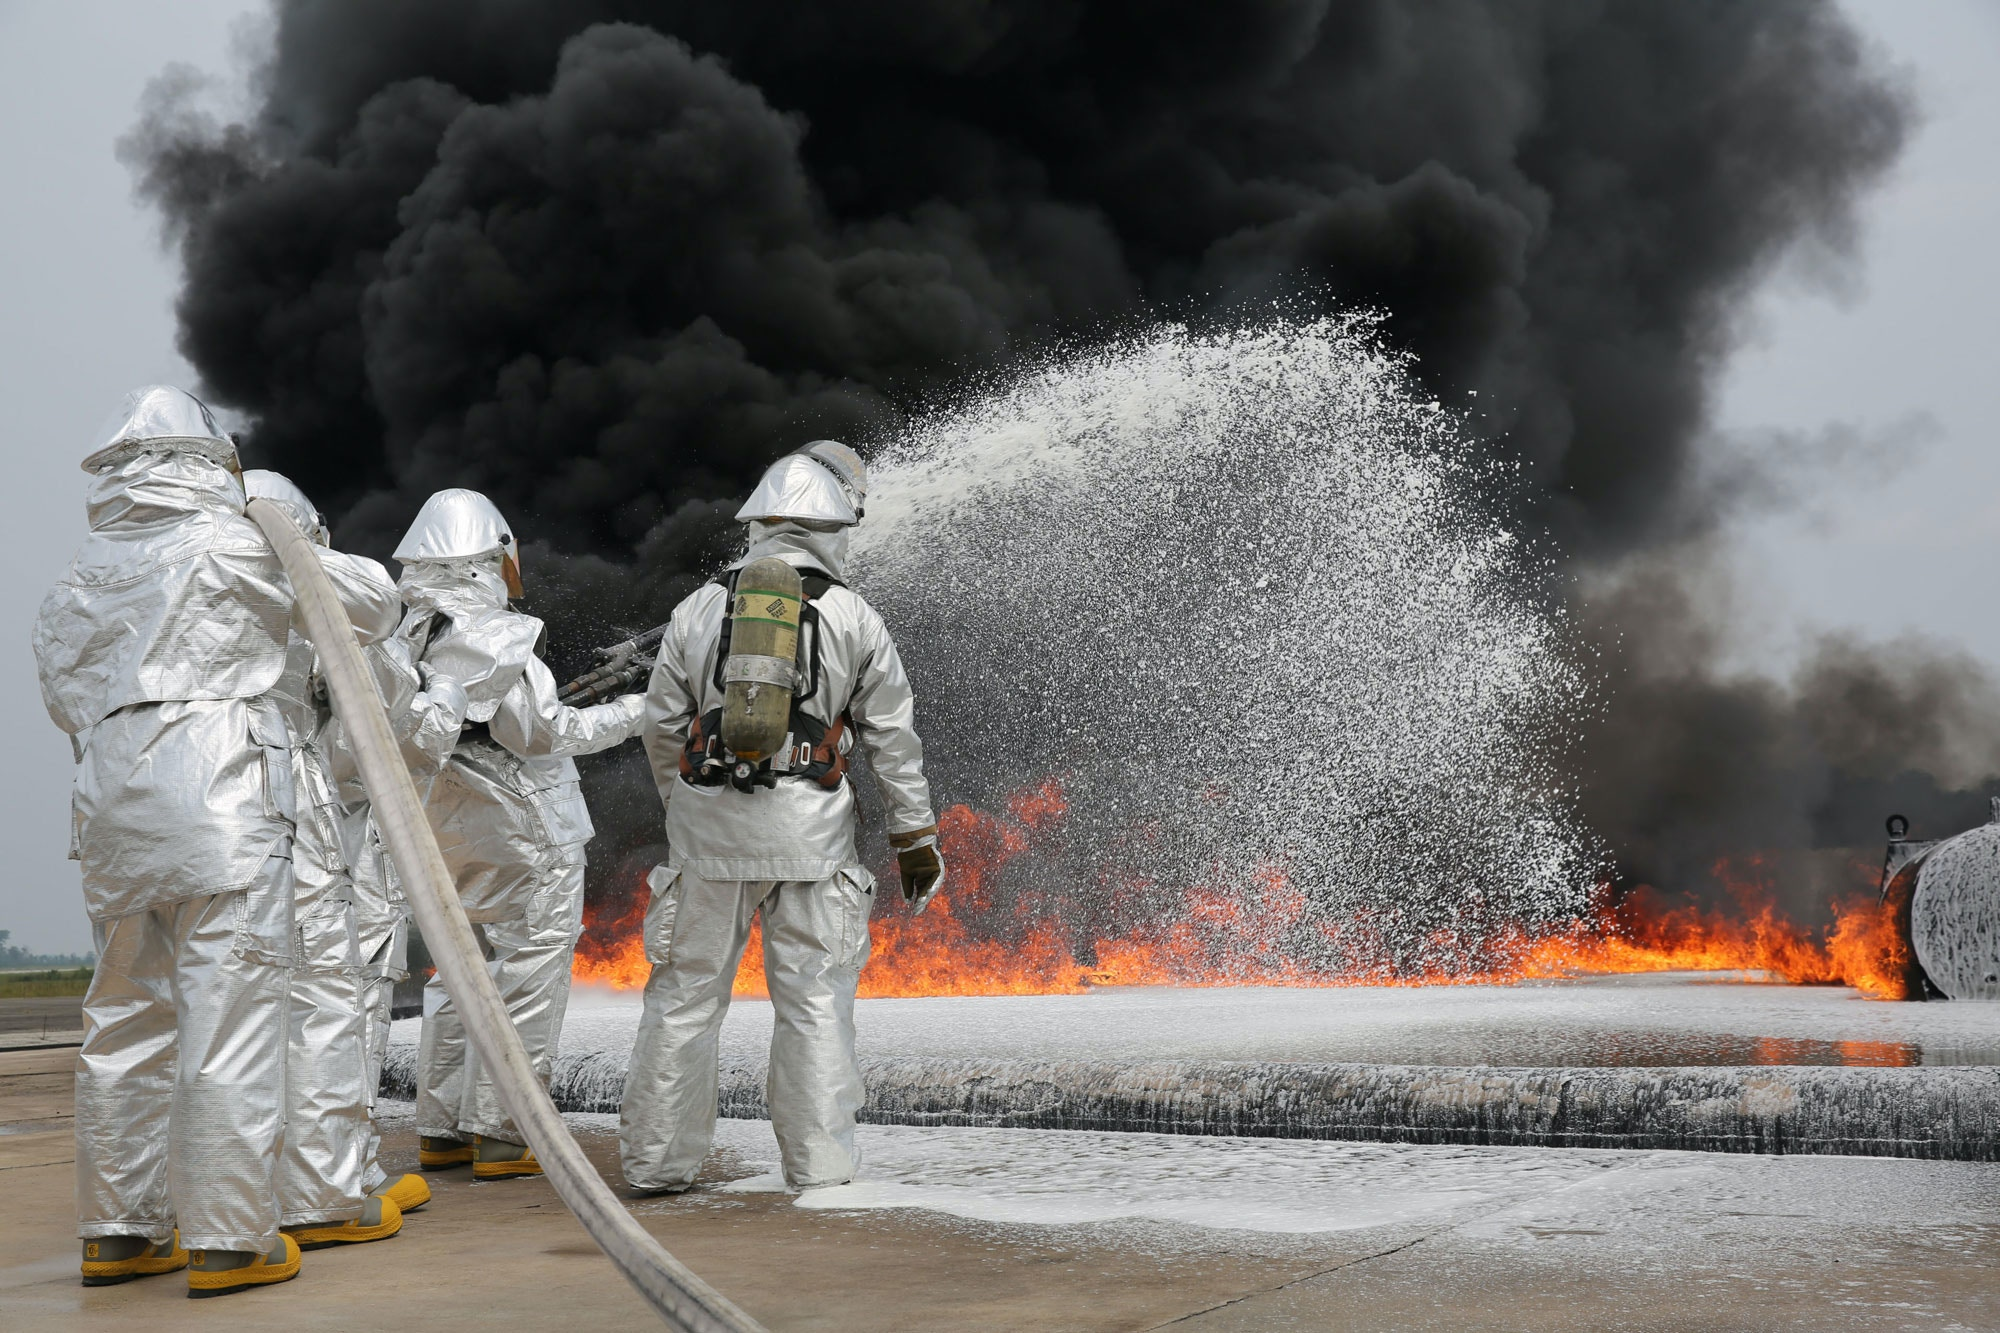 Marines with Bulk Fuel Company, 8th Engineer Support Battalion, 2nd Marine Logistics Group use Twin Agent Units to extinguish a blaze during a live fire training exercise aboard Marine Corps Air Station Cherry Point, Aug. 28, 2013. TAUs combine dry chemicals with water to create a foam that chokes the oxygen from a fire, stunting its growth and effectively ending it. (U.S. Marine Corps photo by Lance Cpl. Shawn Valosin)